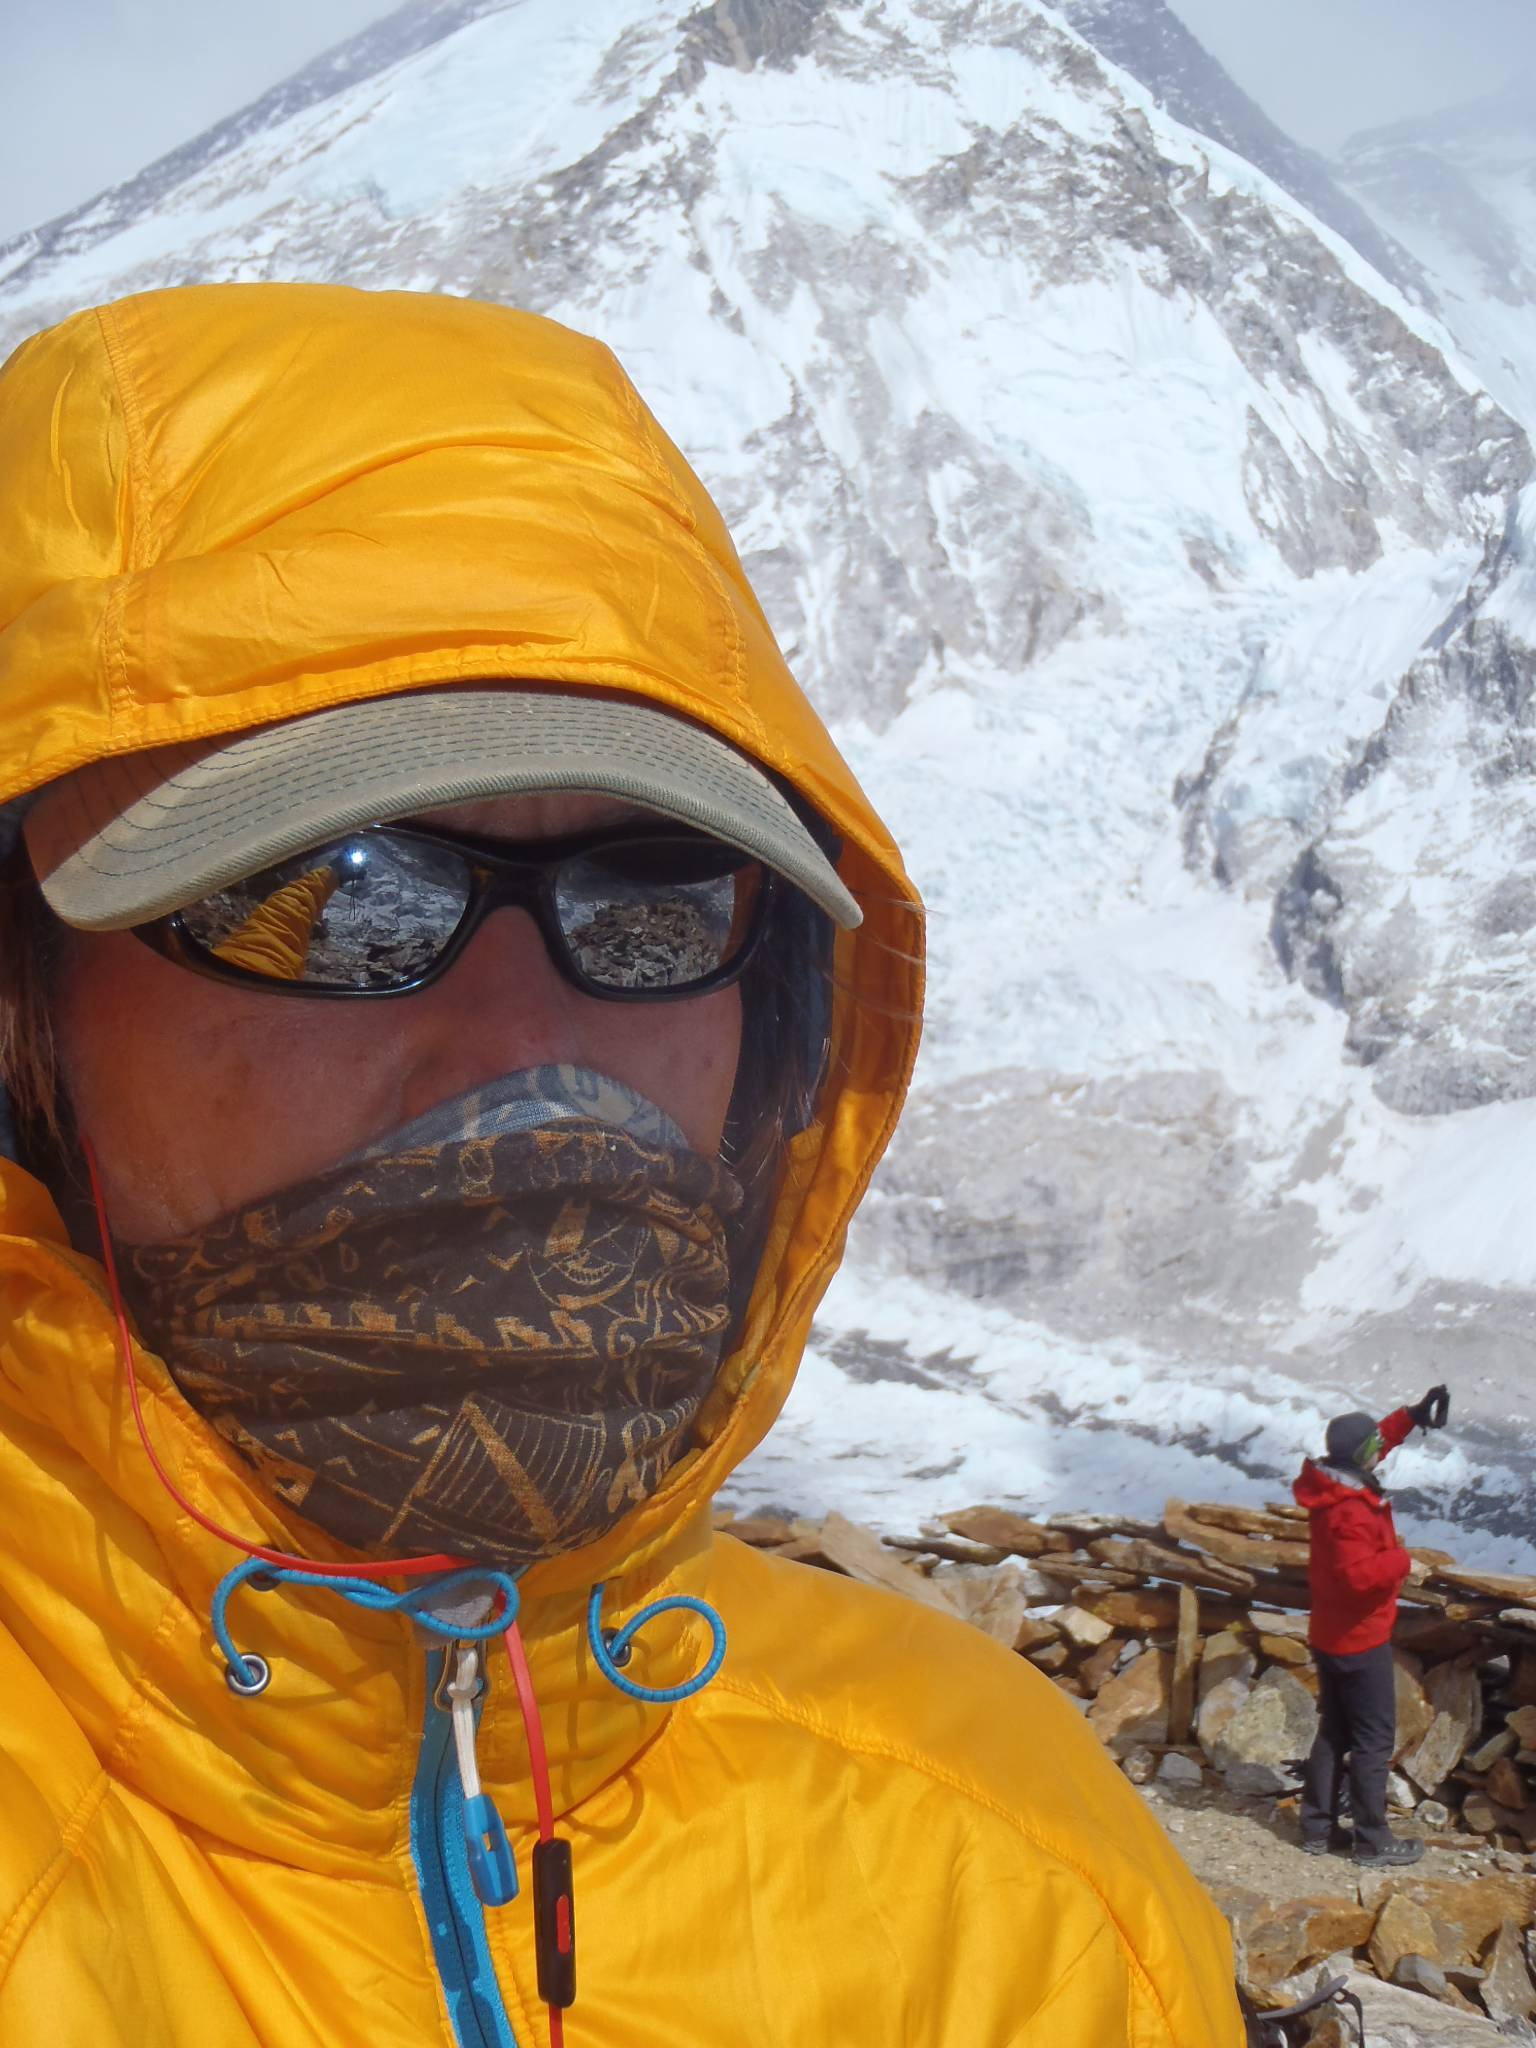 Training in base camp at 17,500 feet before his planned ascent of Everest, climber Joel Schauer of Hawthorn Woods snaps a quick selfie.